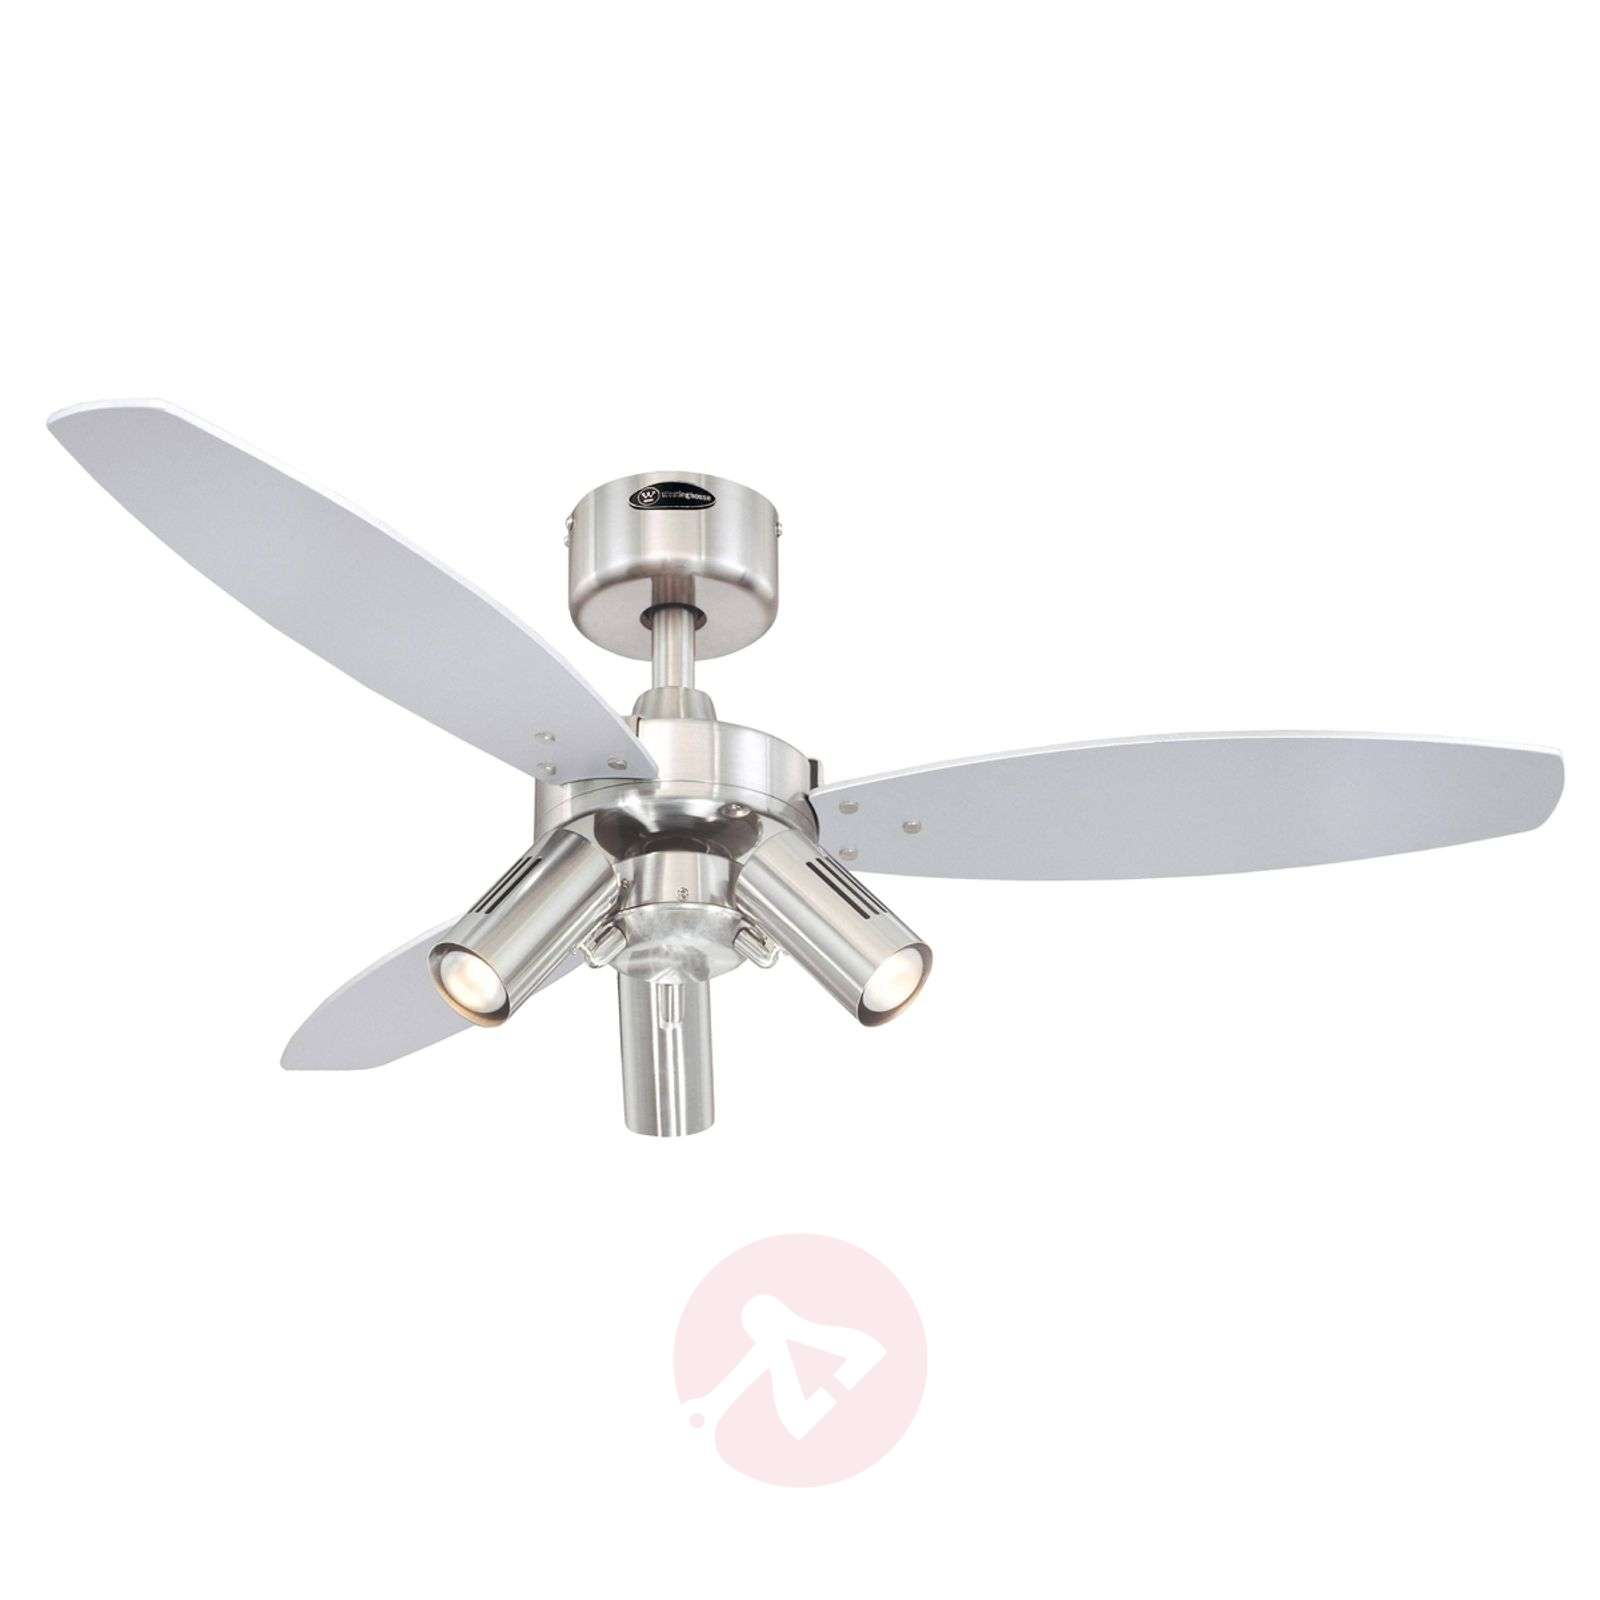 Jet Plus ceiling fan, remote control, three bulbs-9602230-02